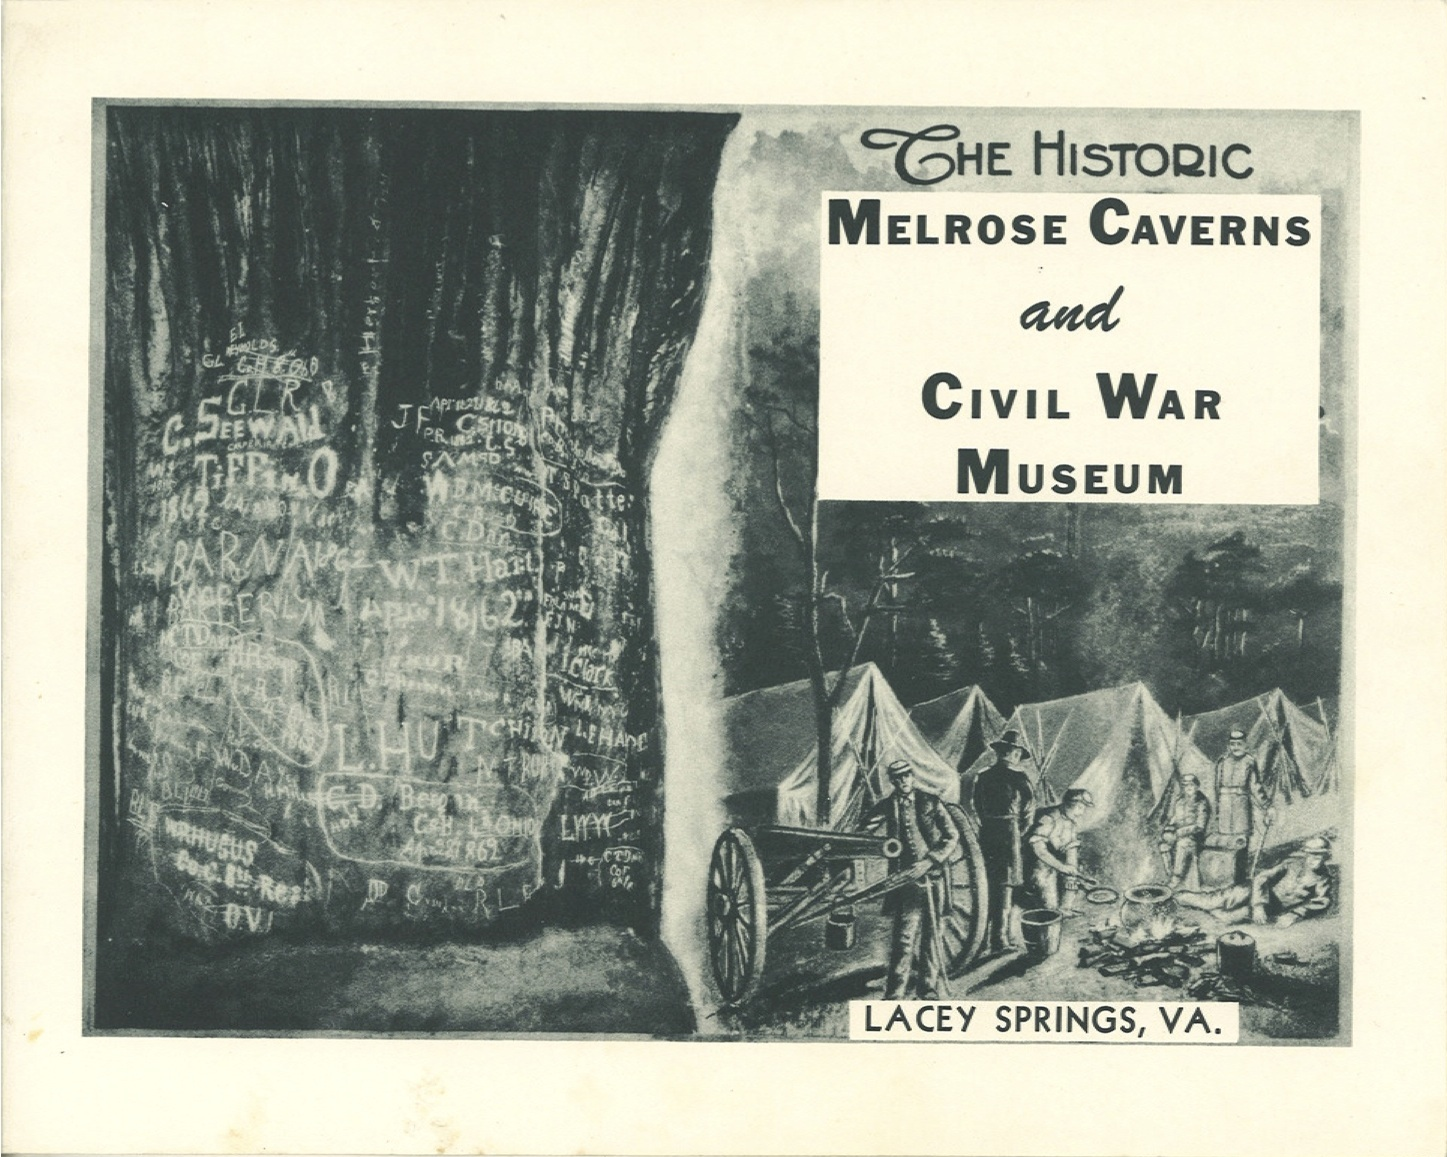 Booklet from Melrose Caverns circa 1940.